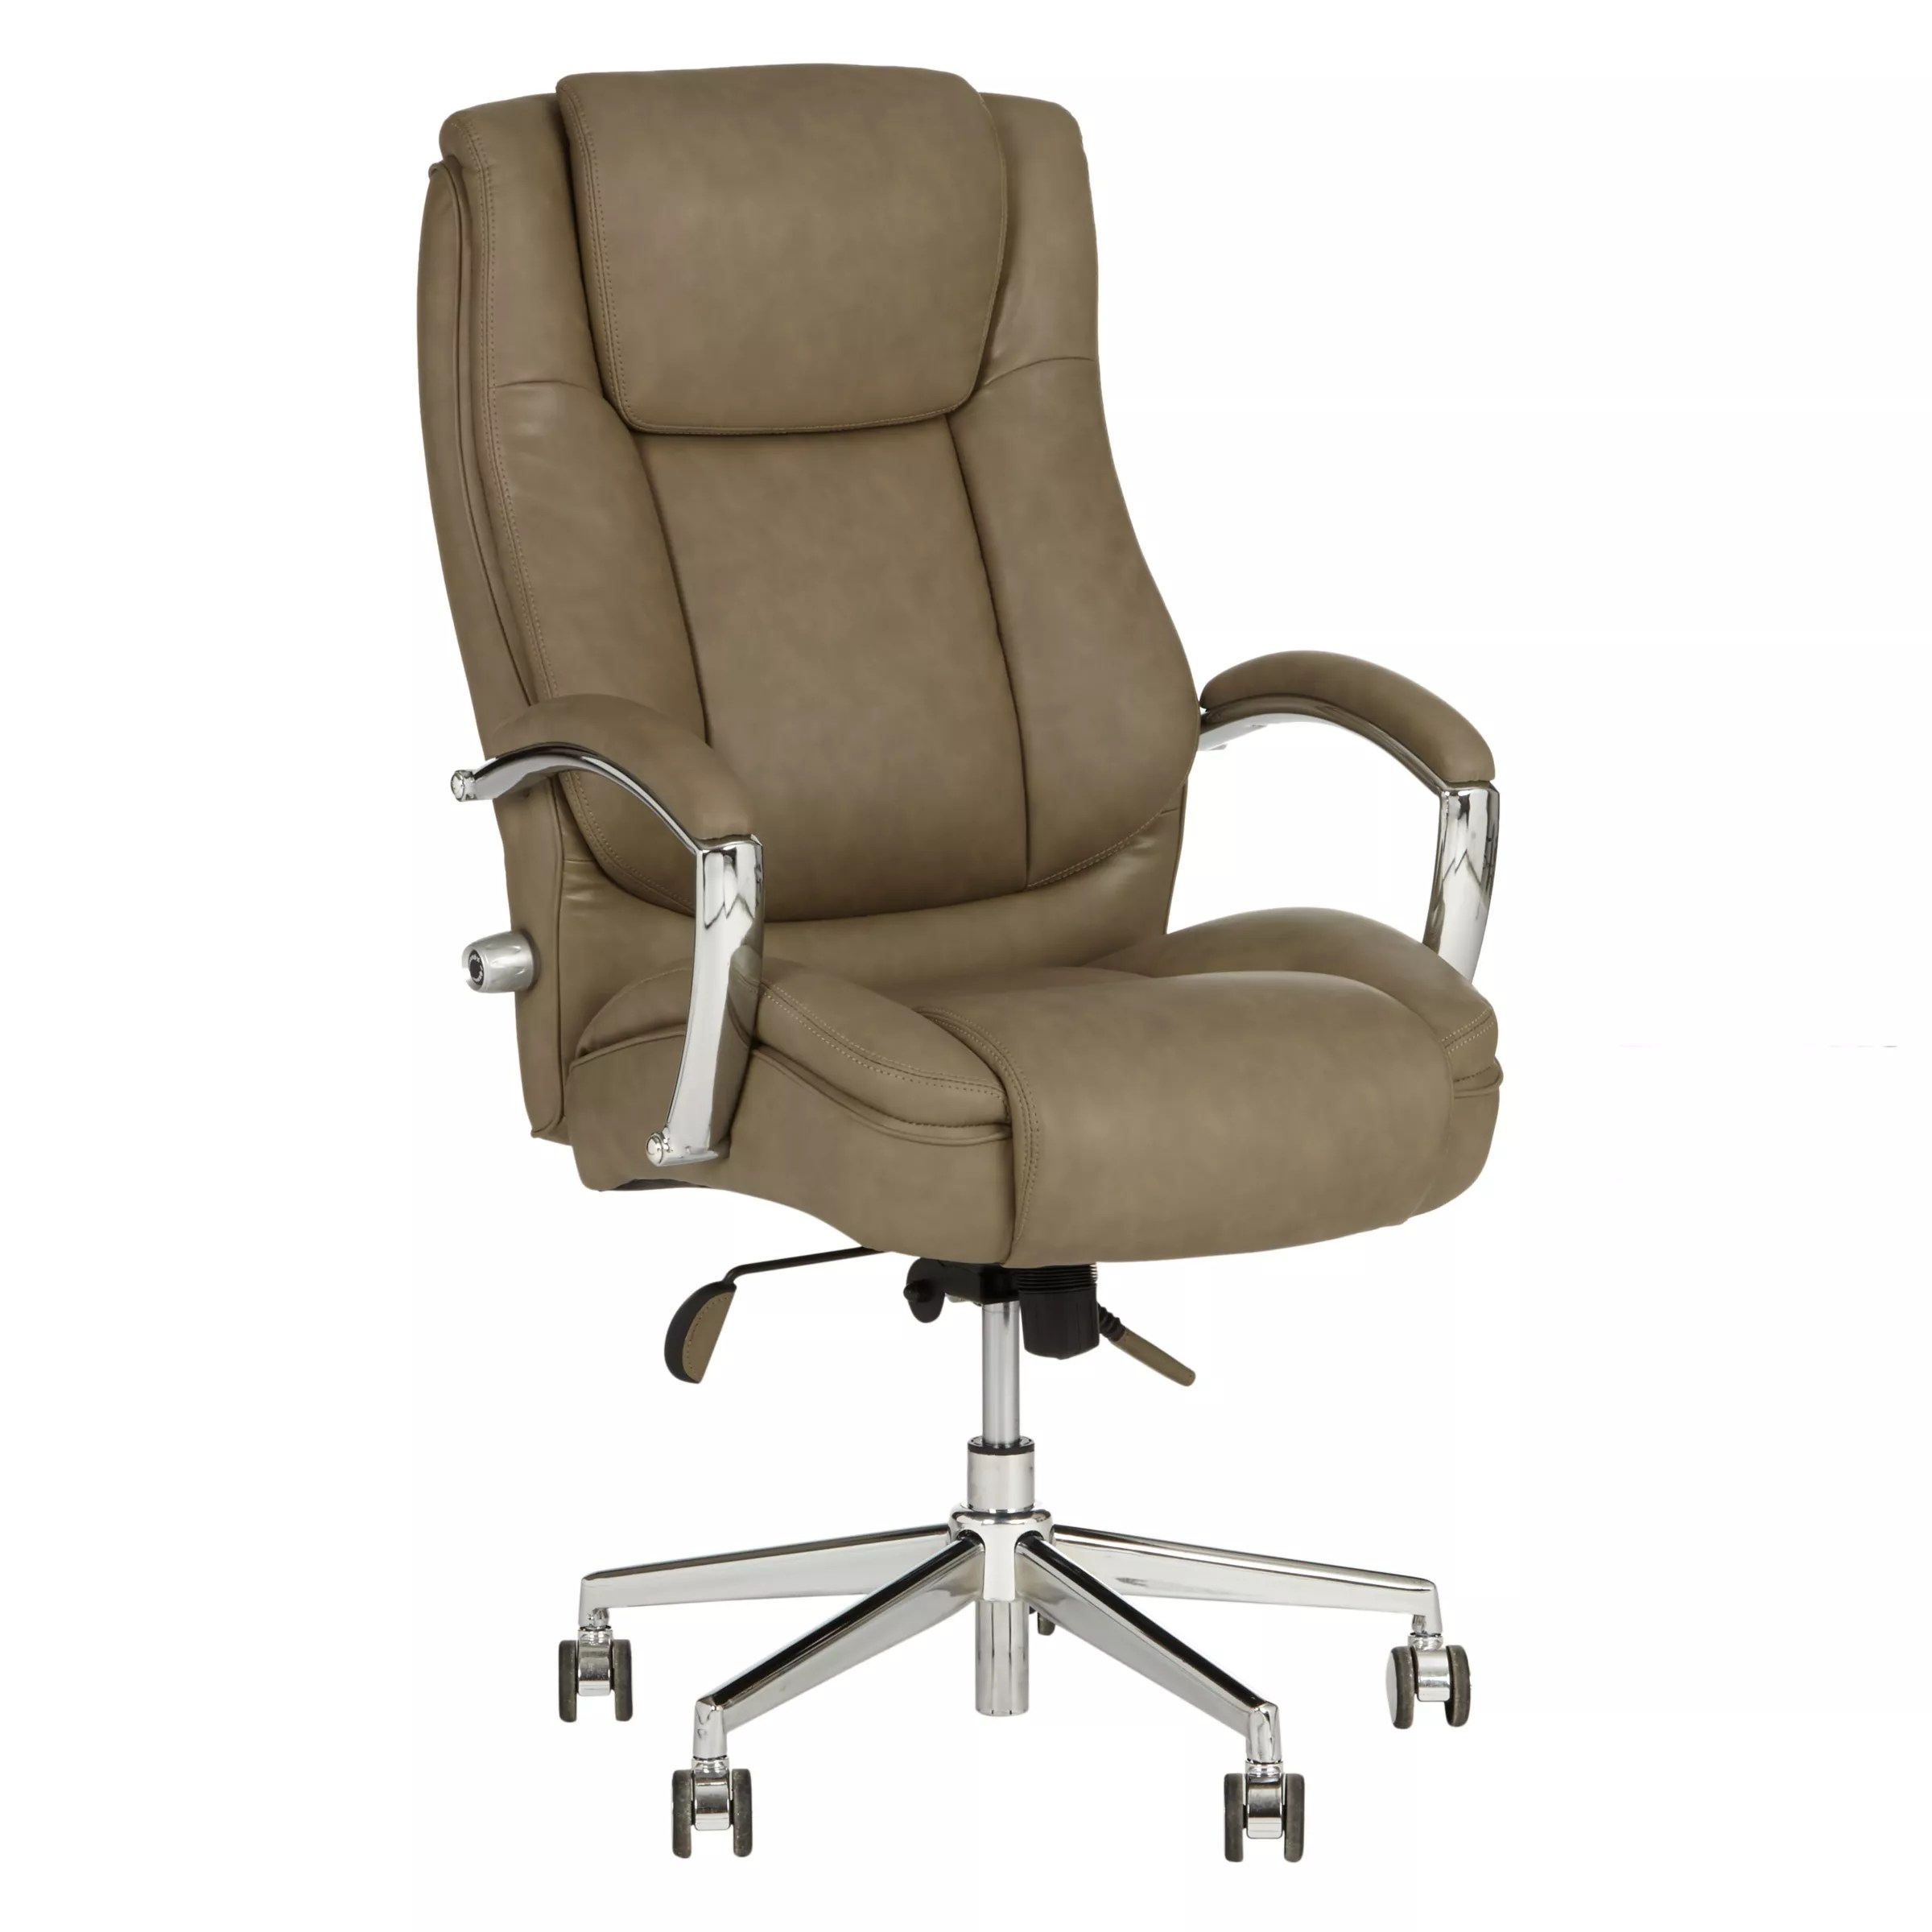 office chair online desk and set uk john lewis jefferson at